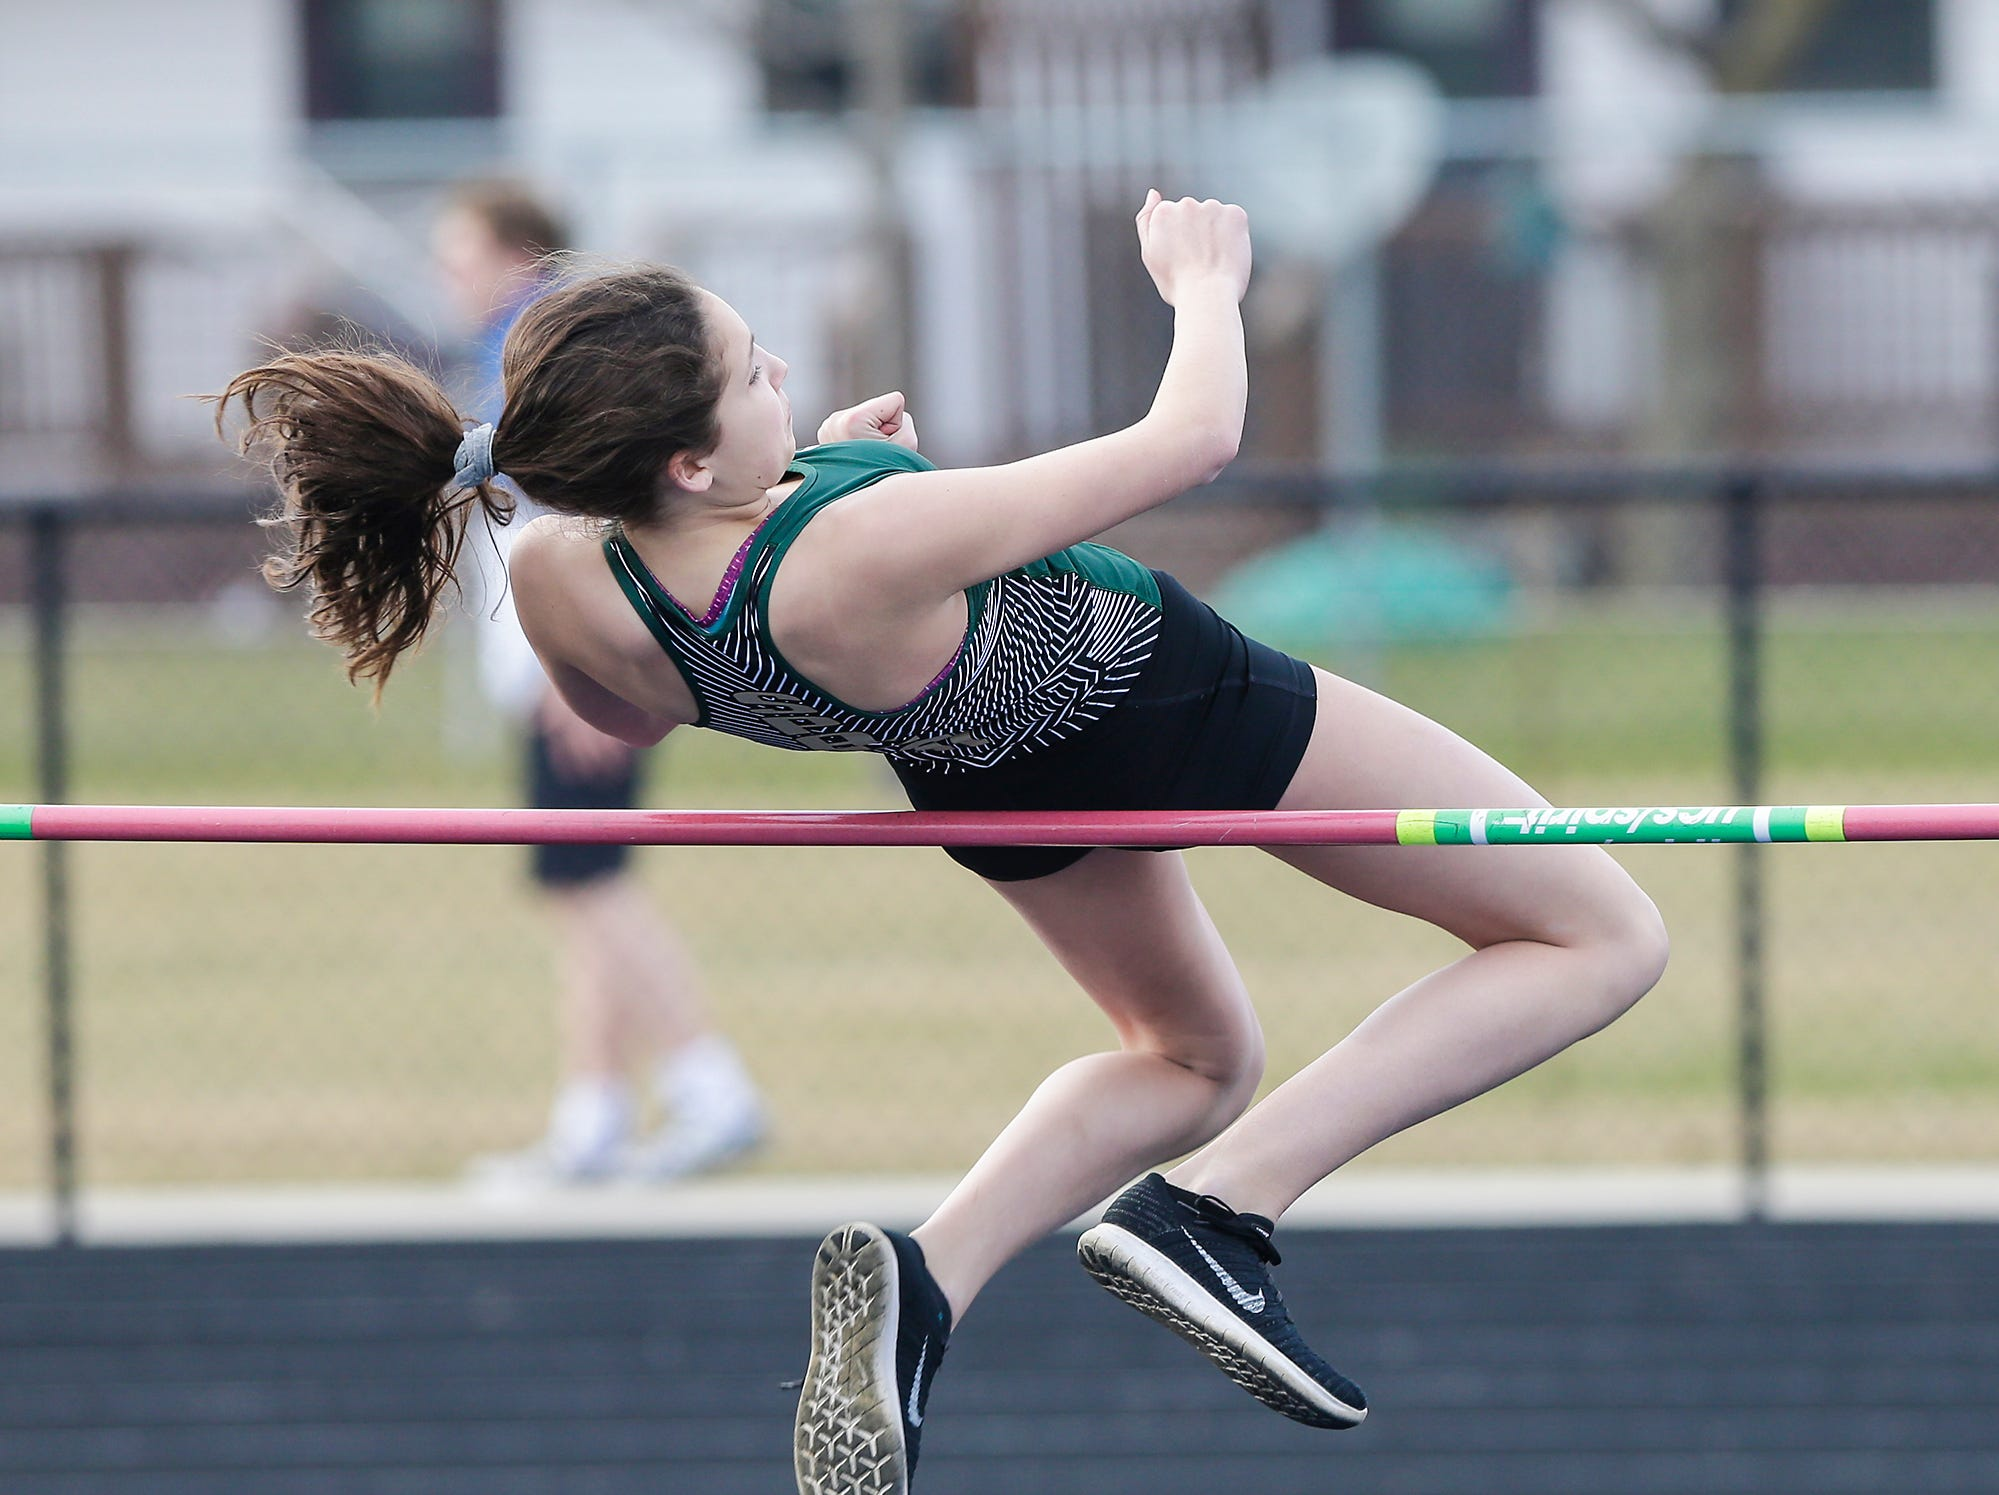 Laconia High School's Jayda Janeczko takes part in the high jump Tuesday, April 16, 2019 at North Fond du Lac High School in North Fond du Lac, Wis. Doug Raflik/USA TODAY NETWORK-Wisconsin